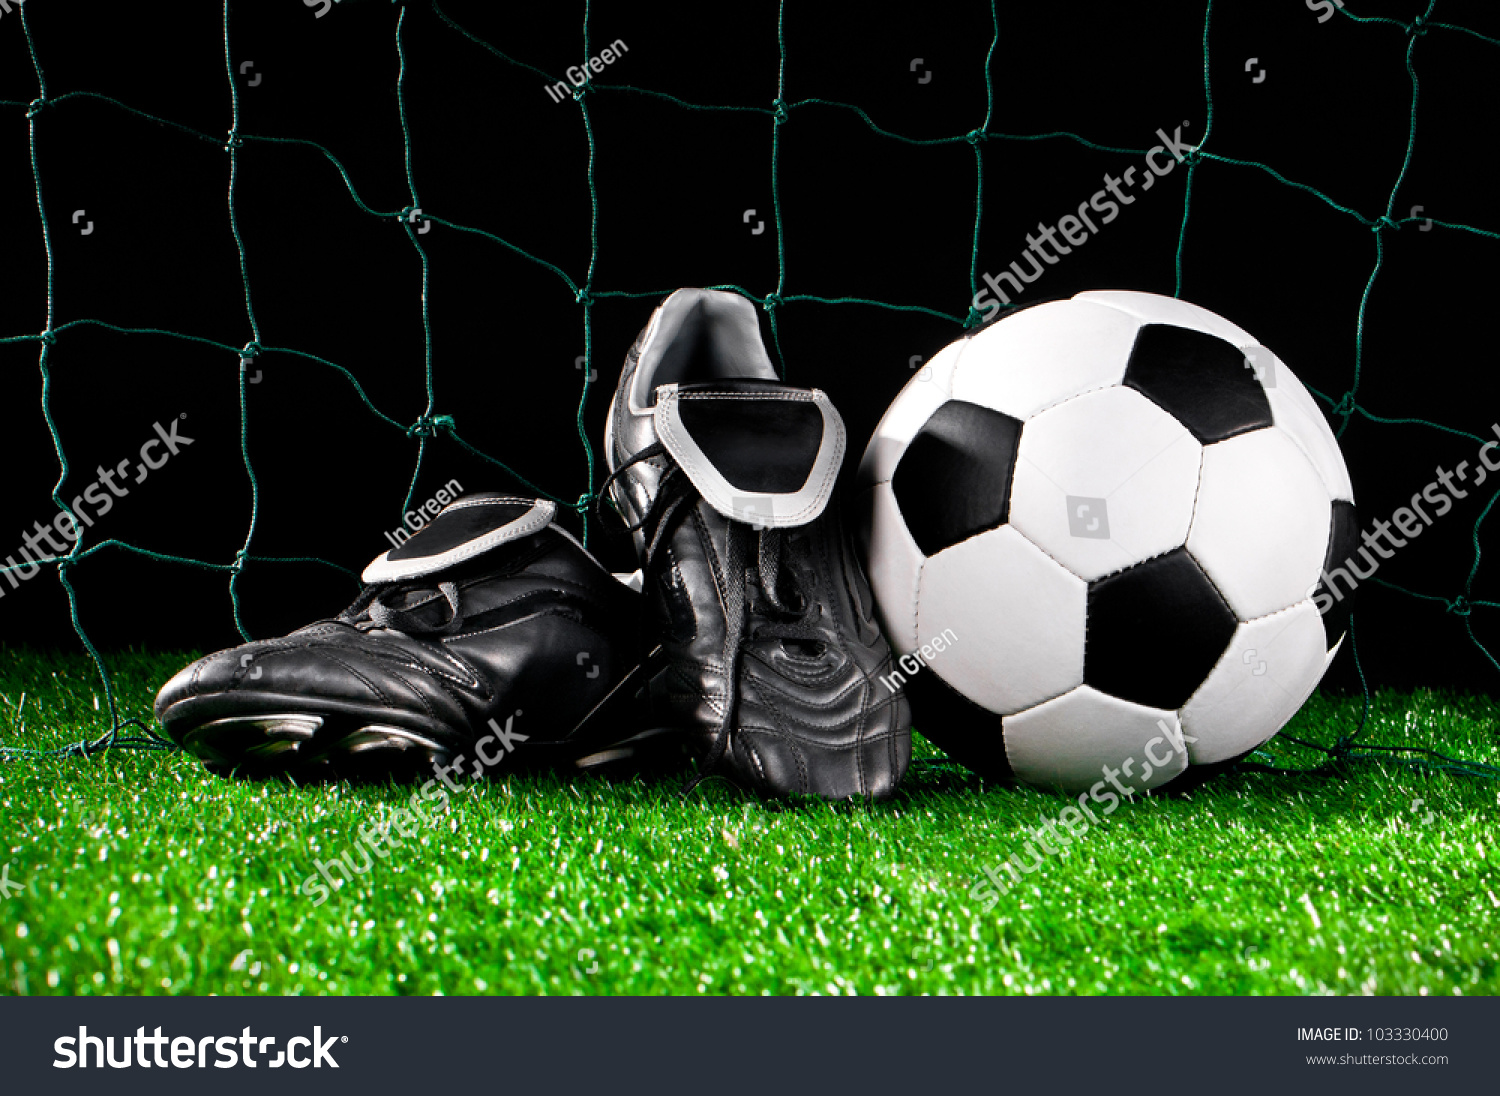 soccer ball cleats on football field stock photo 103330400